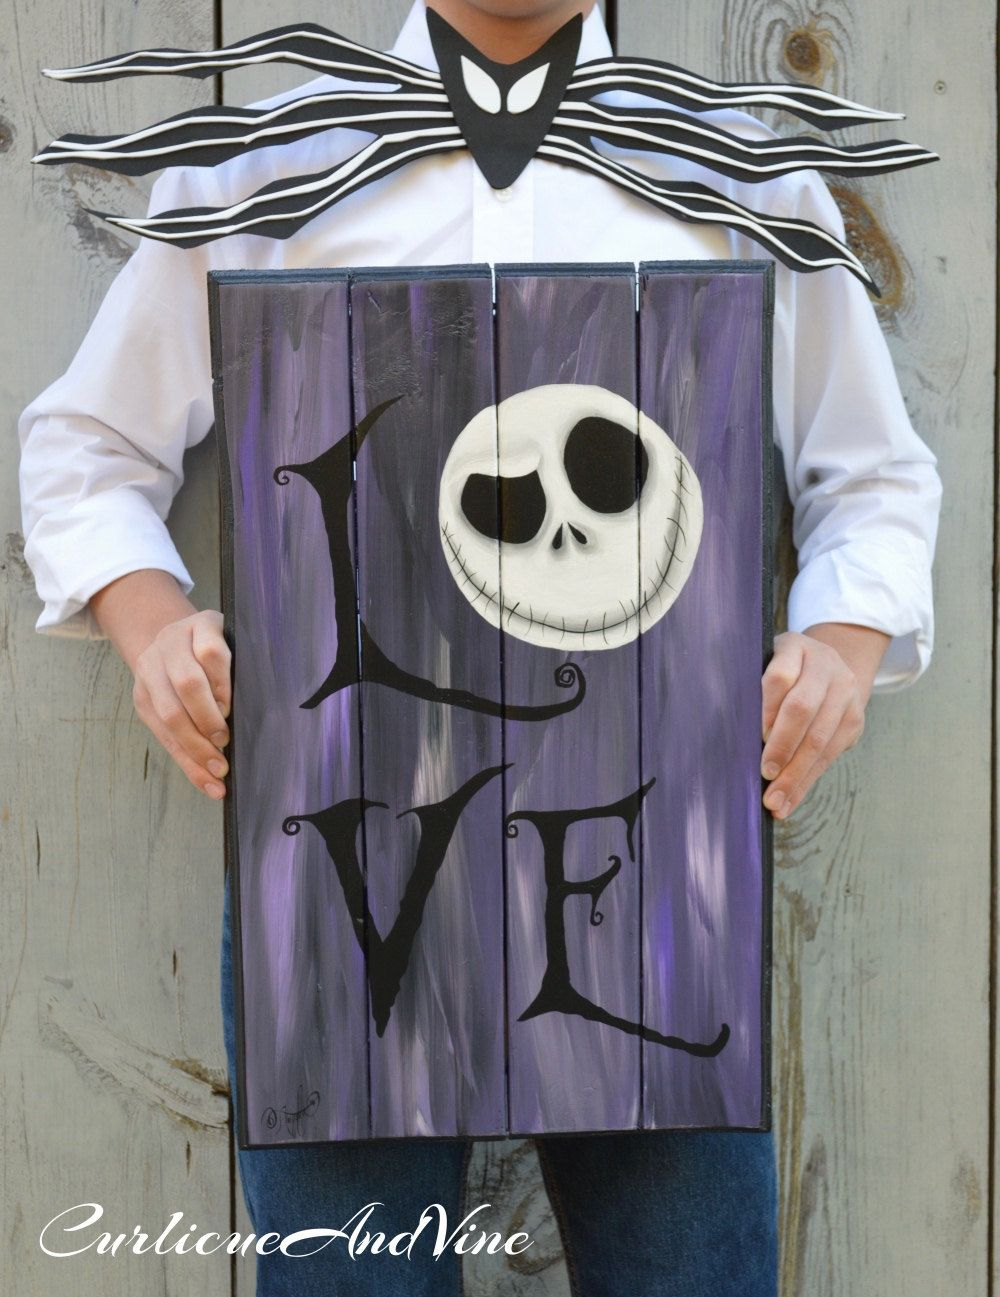 Nightmare Before Christmas Bedroom Decor Cool The Nightmare Before Christmas  Pallet Wood  Jack Skellington Design Decoration